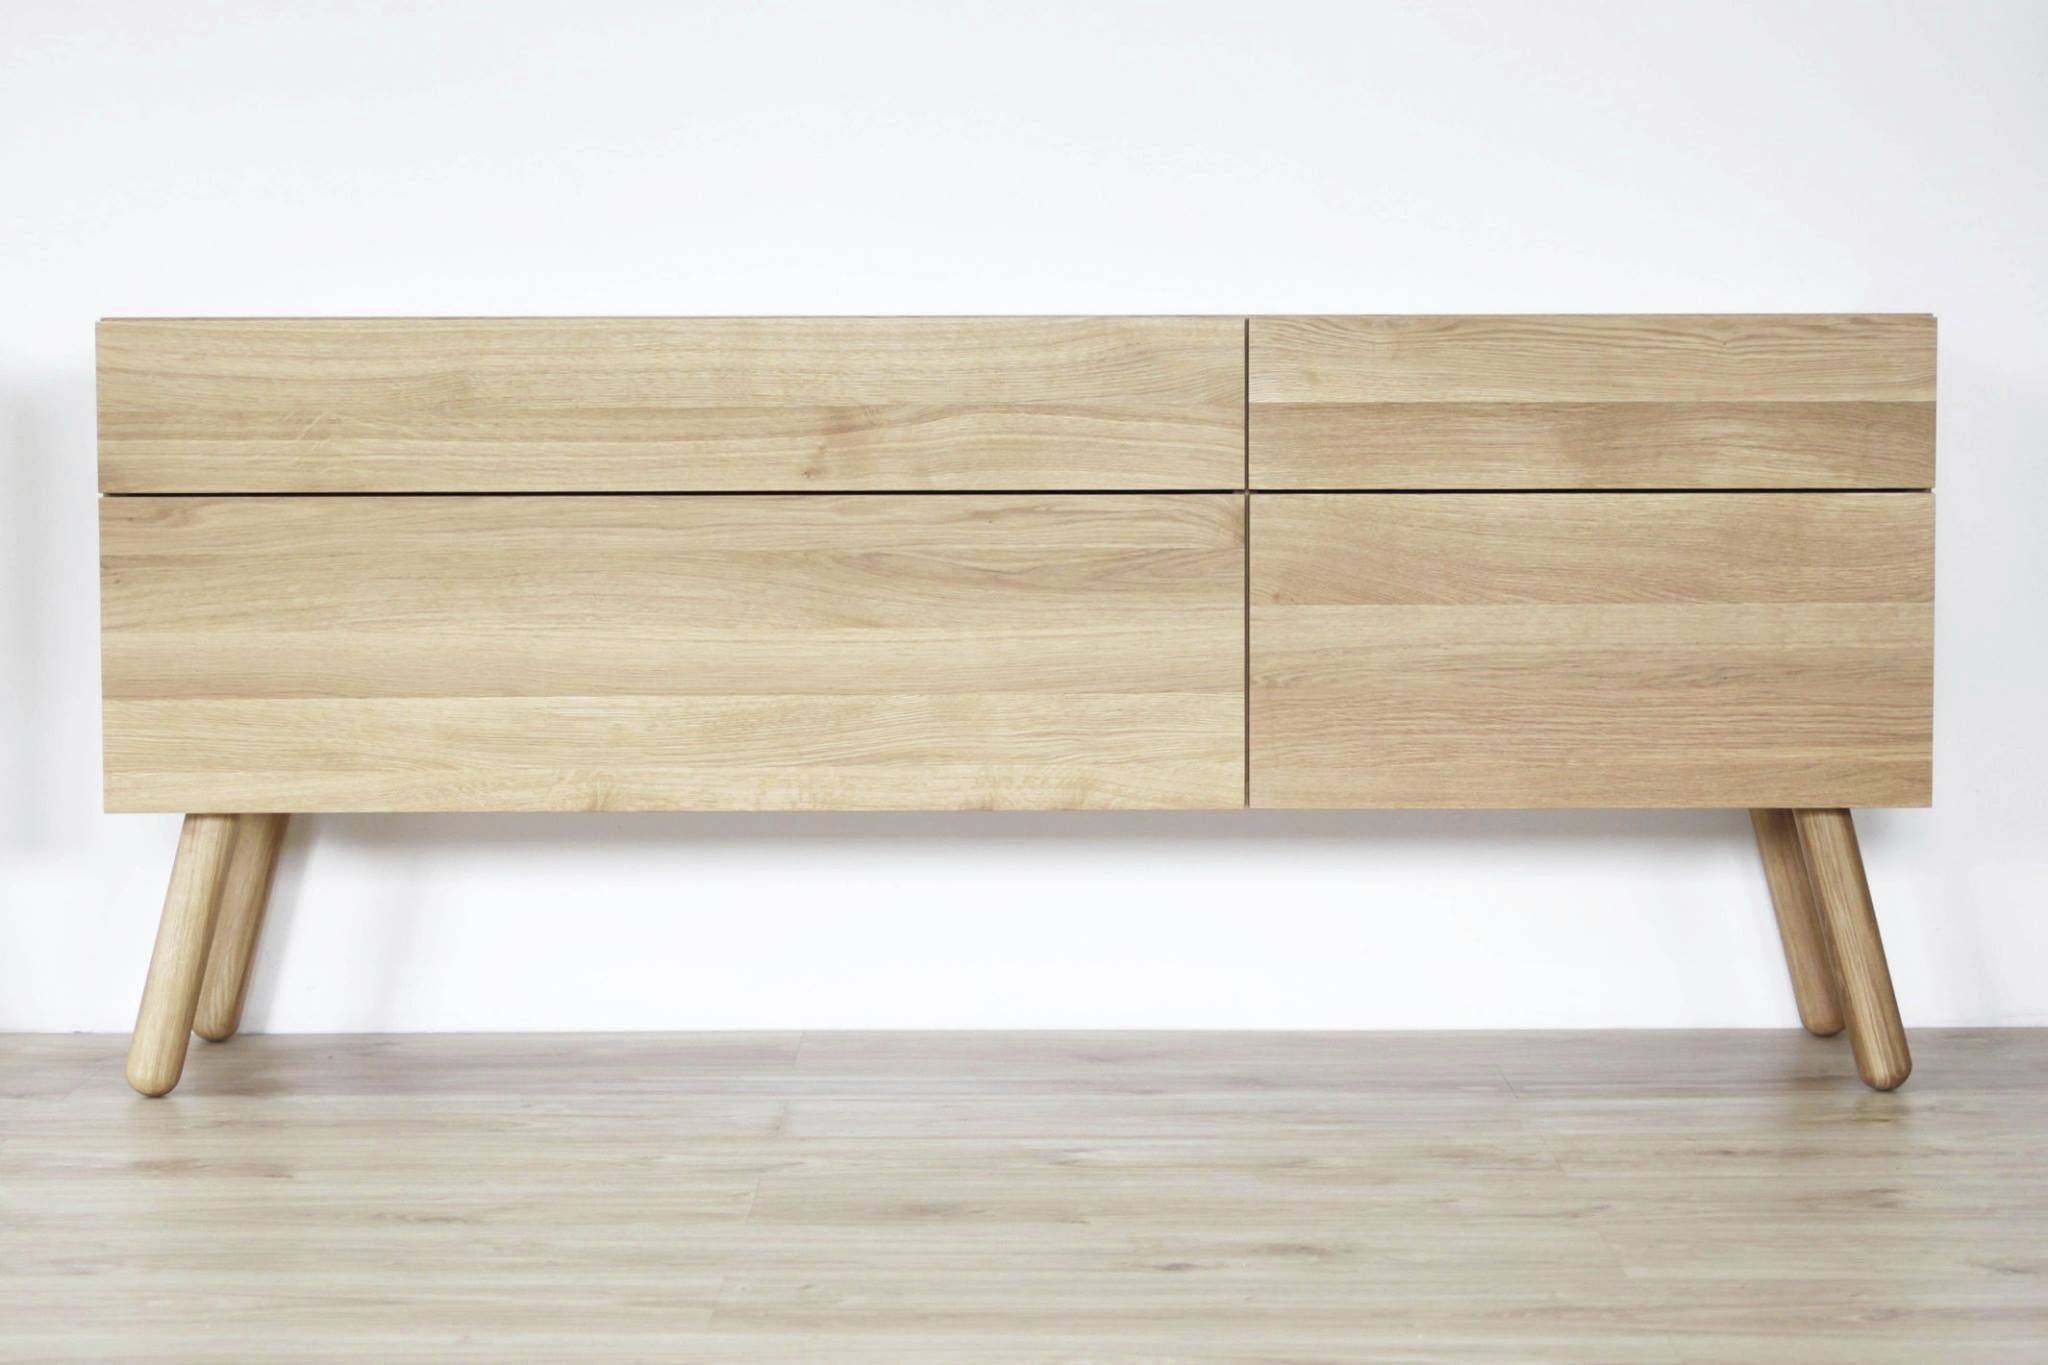 Contemporary Sideboard / Oak / Plywood - Ox - Miloni Deutschland with regard to Contemporary Wood Sideboards (Image 3 of 30)